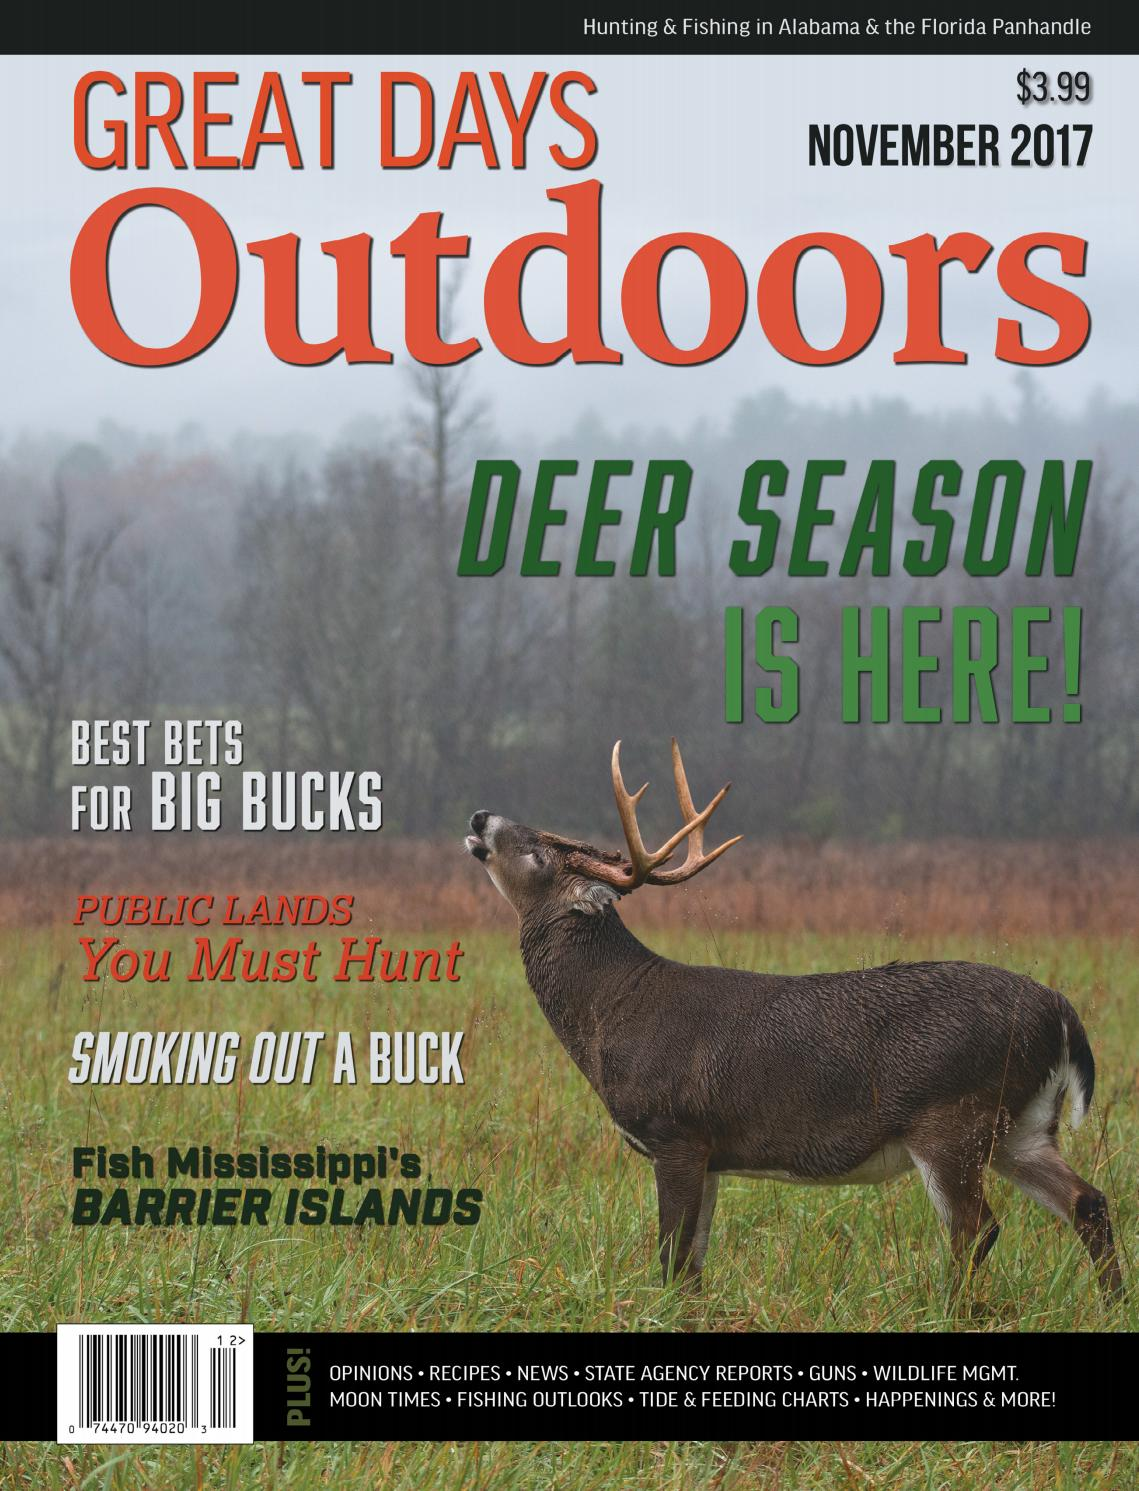 Great Days Outdoors - November 2017 by TrendSouth Media - issuu